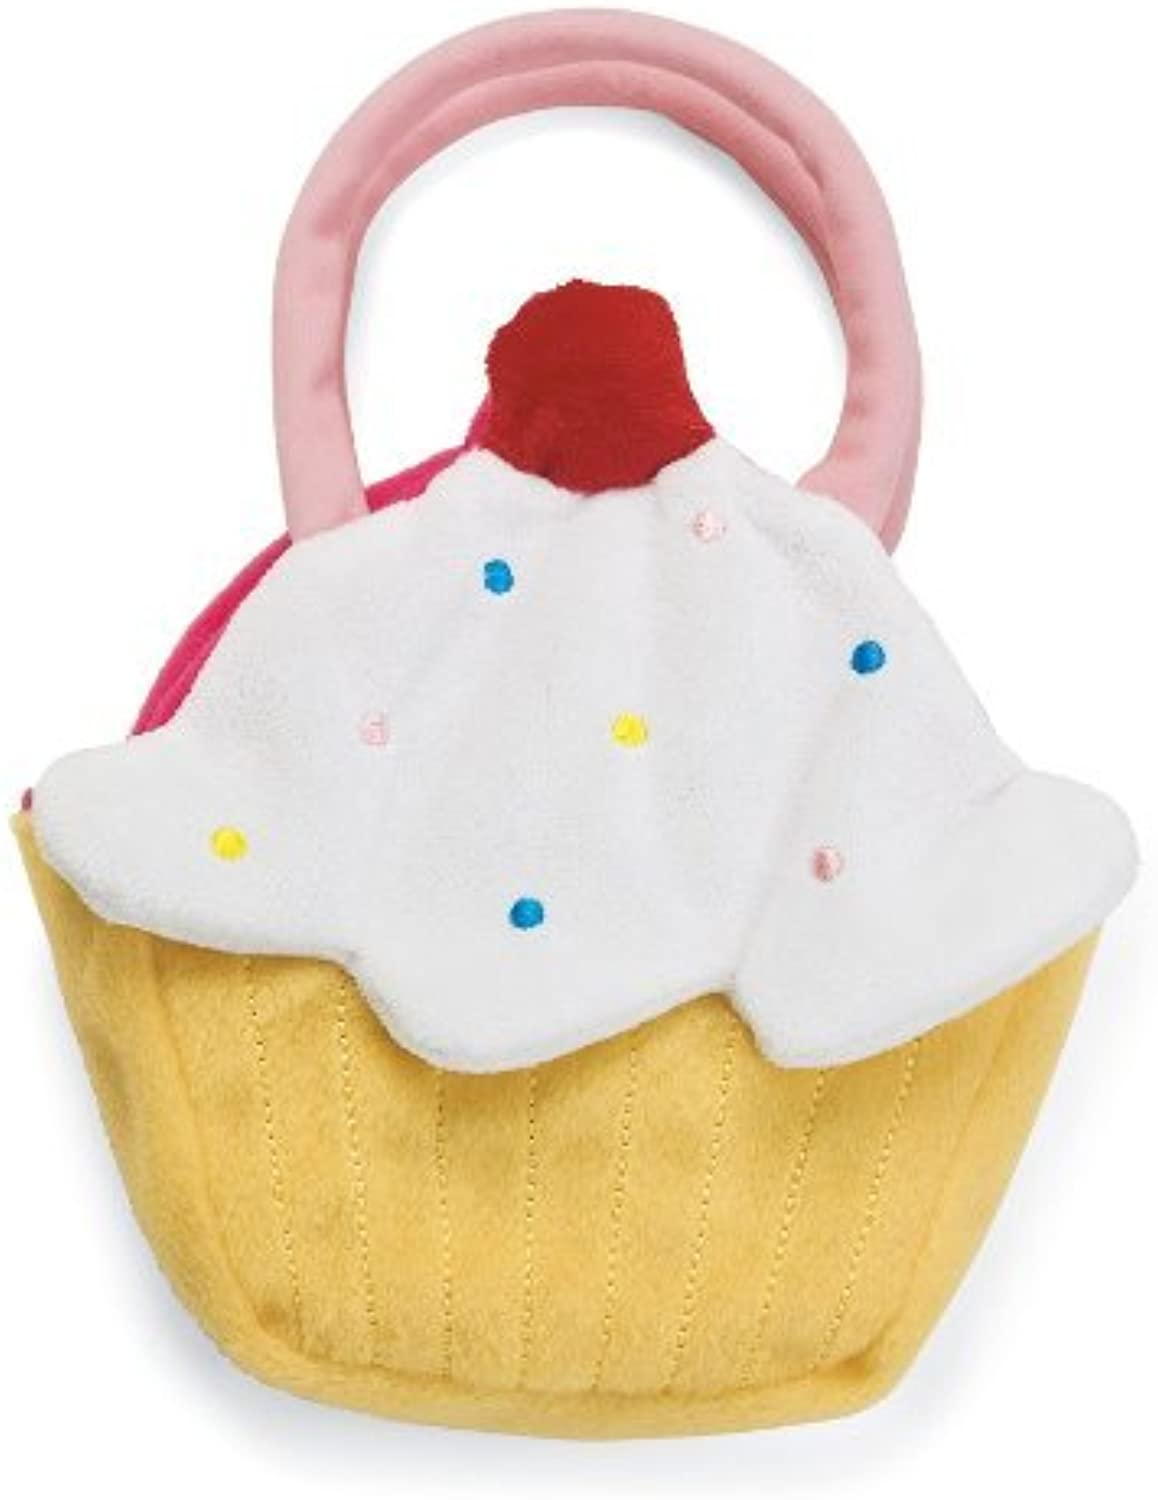 autentico en linea North American Bear Company Goody Goody Goody Bag Vanilla Cupcake by North American Bear  deportes calientes